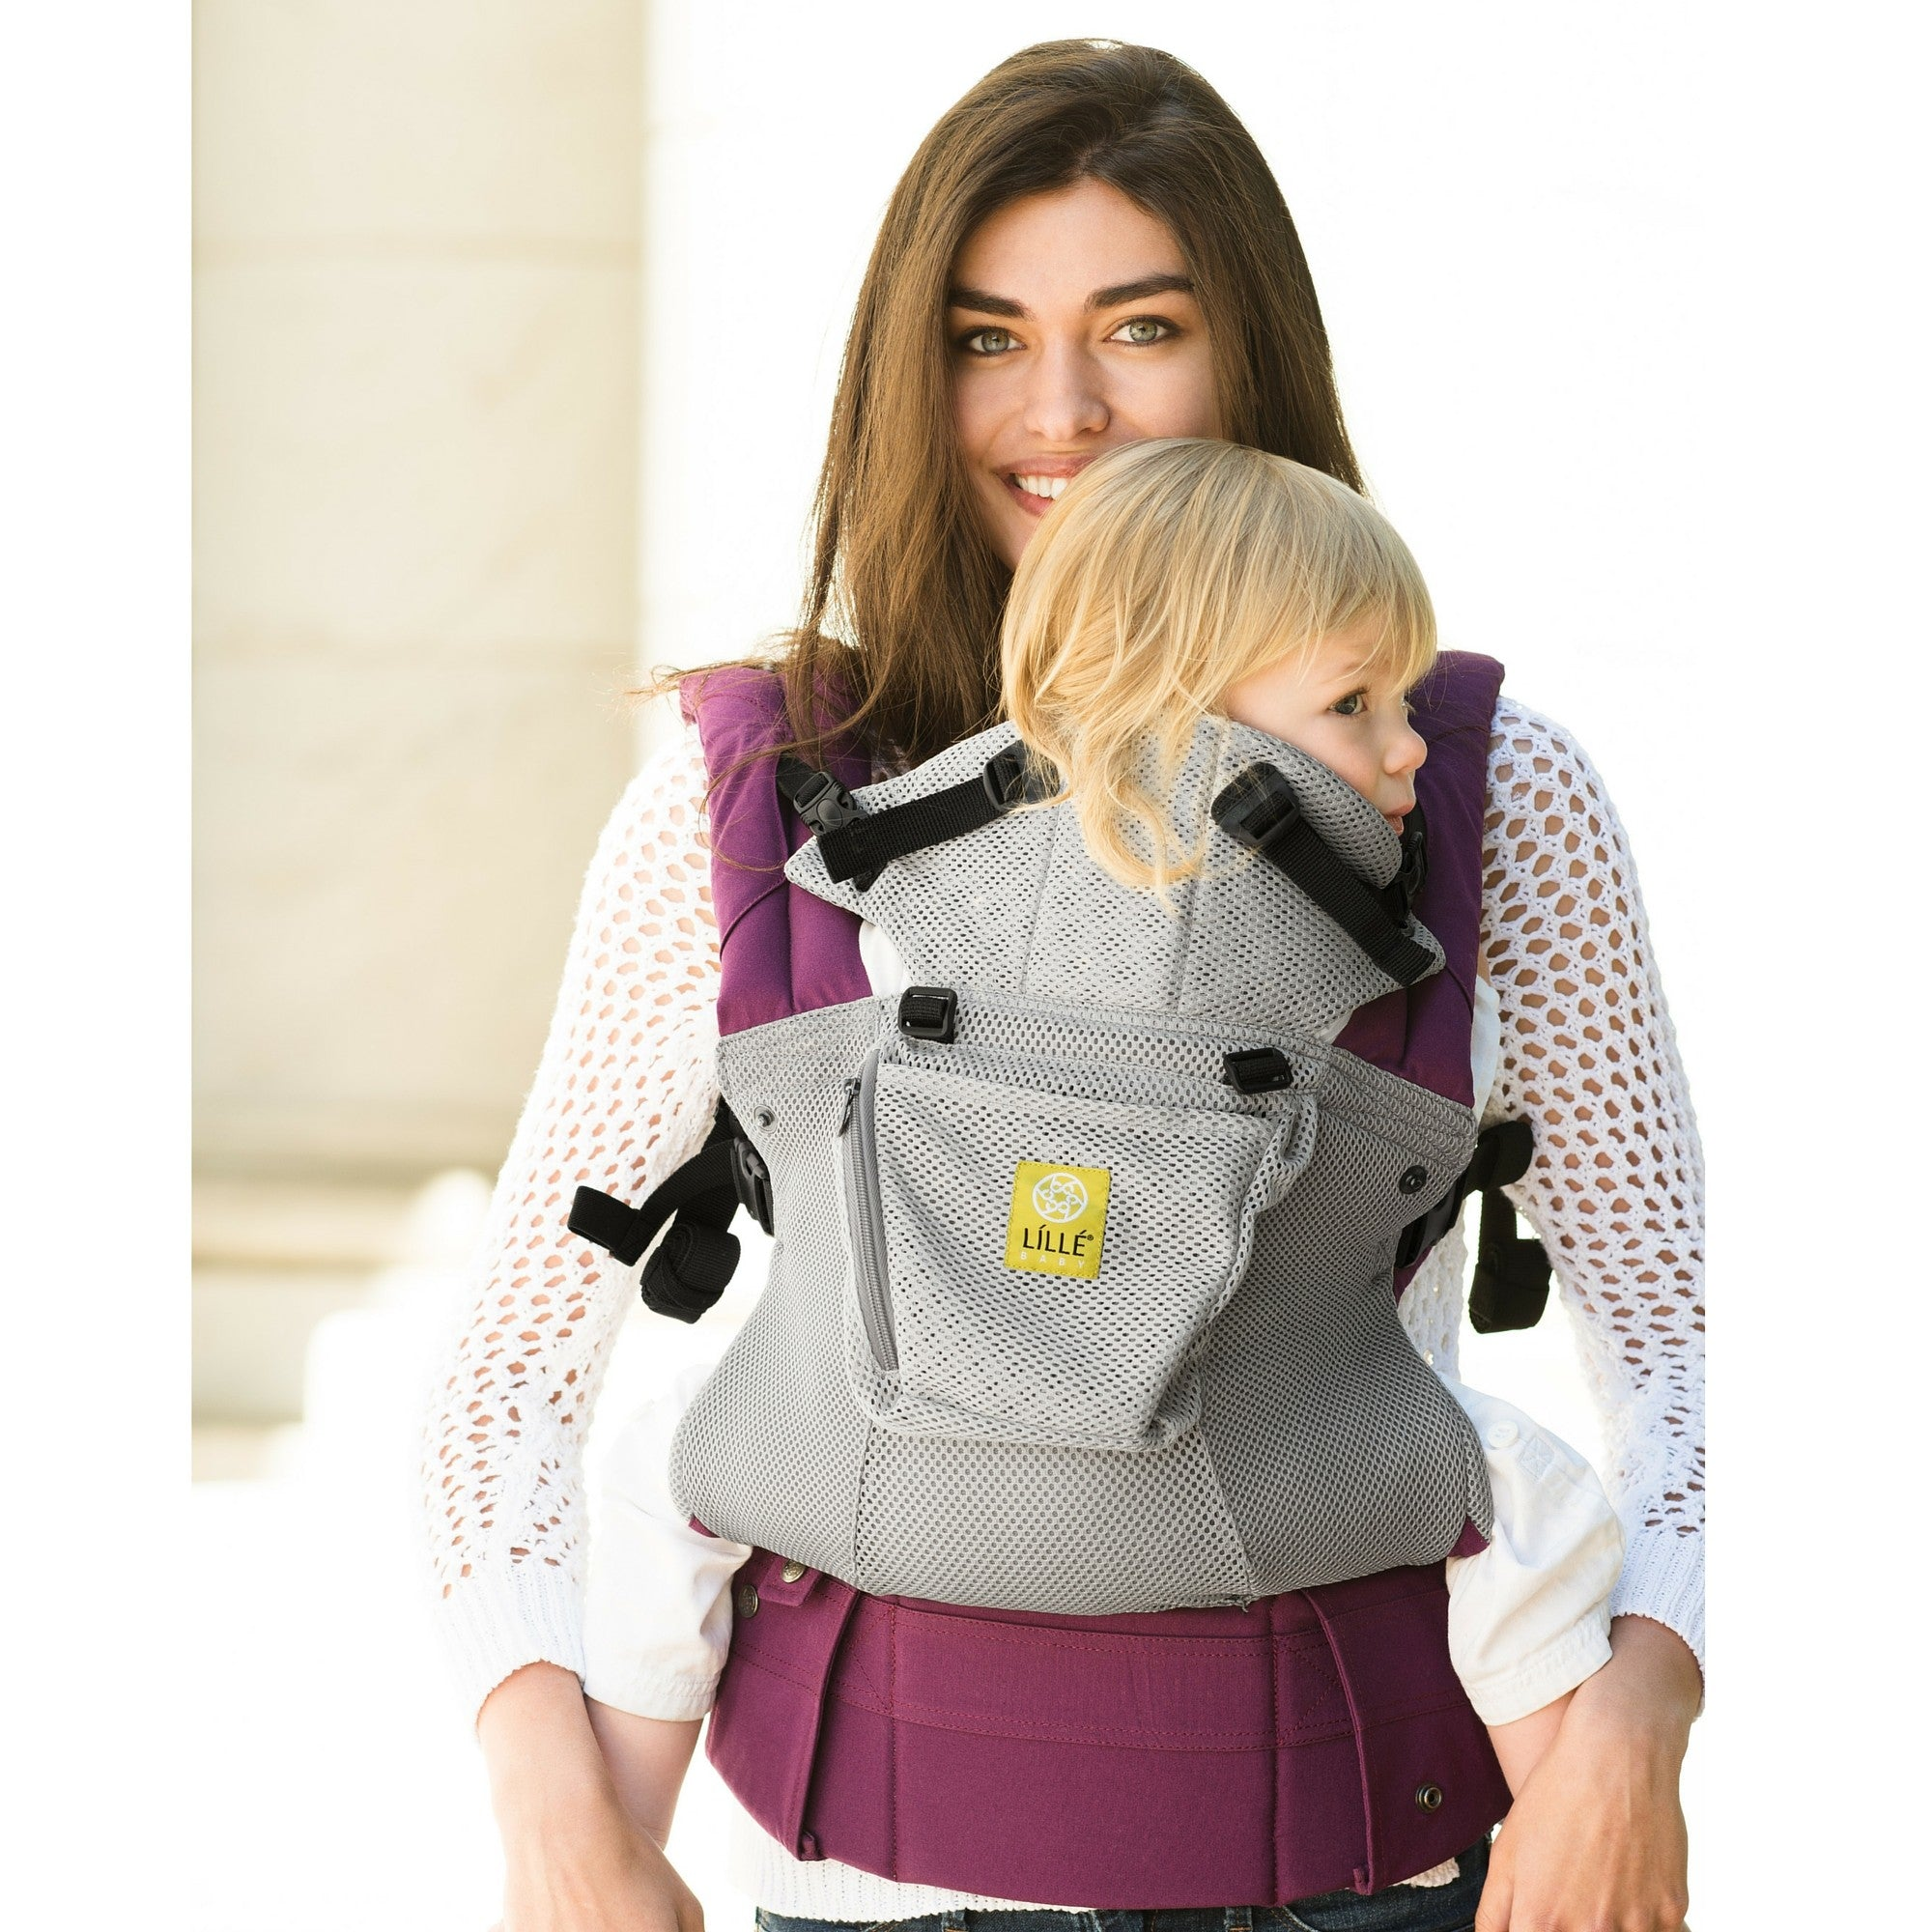 545ccae02b4 Lillebaby Airflow Complete 6-in-1 Carrier - Jillian s Drawers